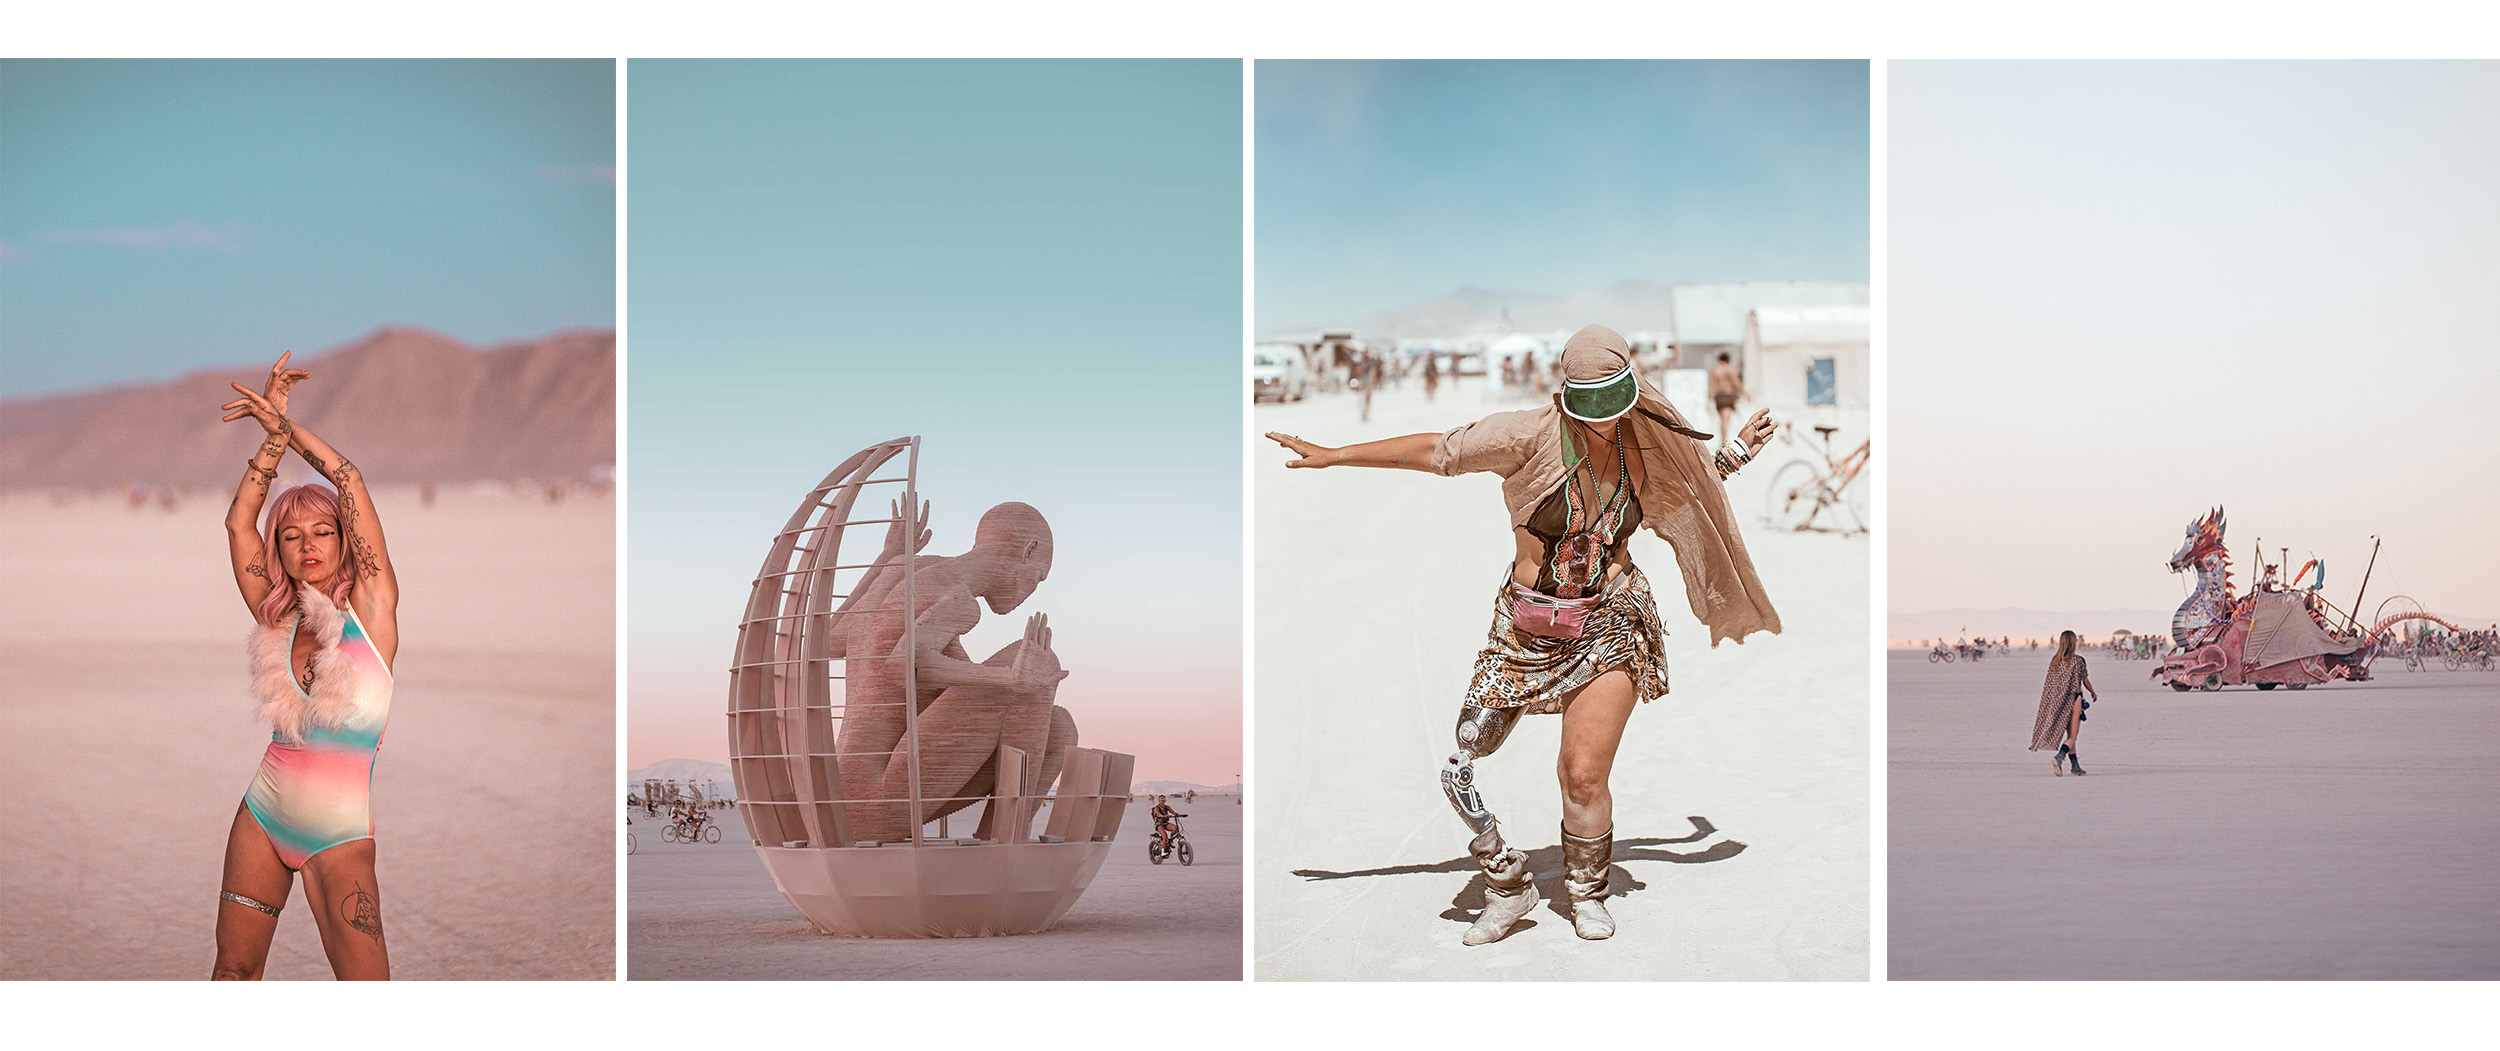 Irene Ferri - Burning Man